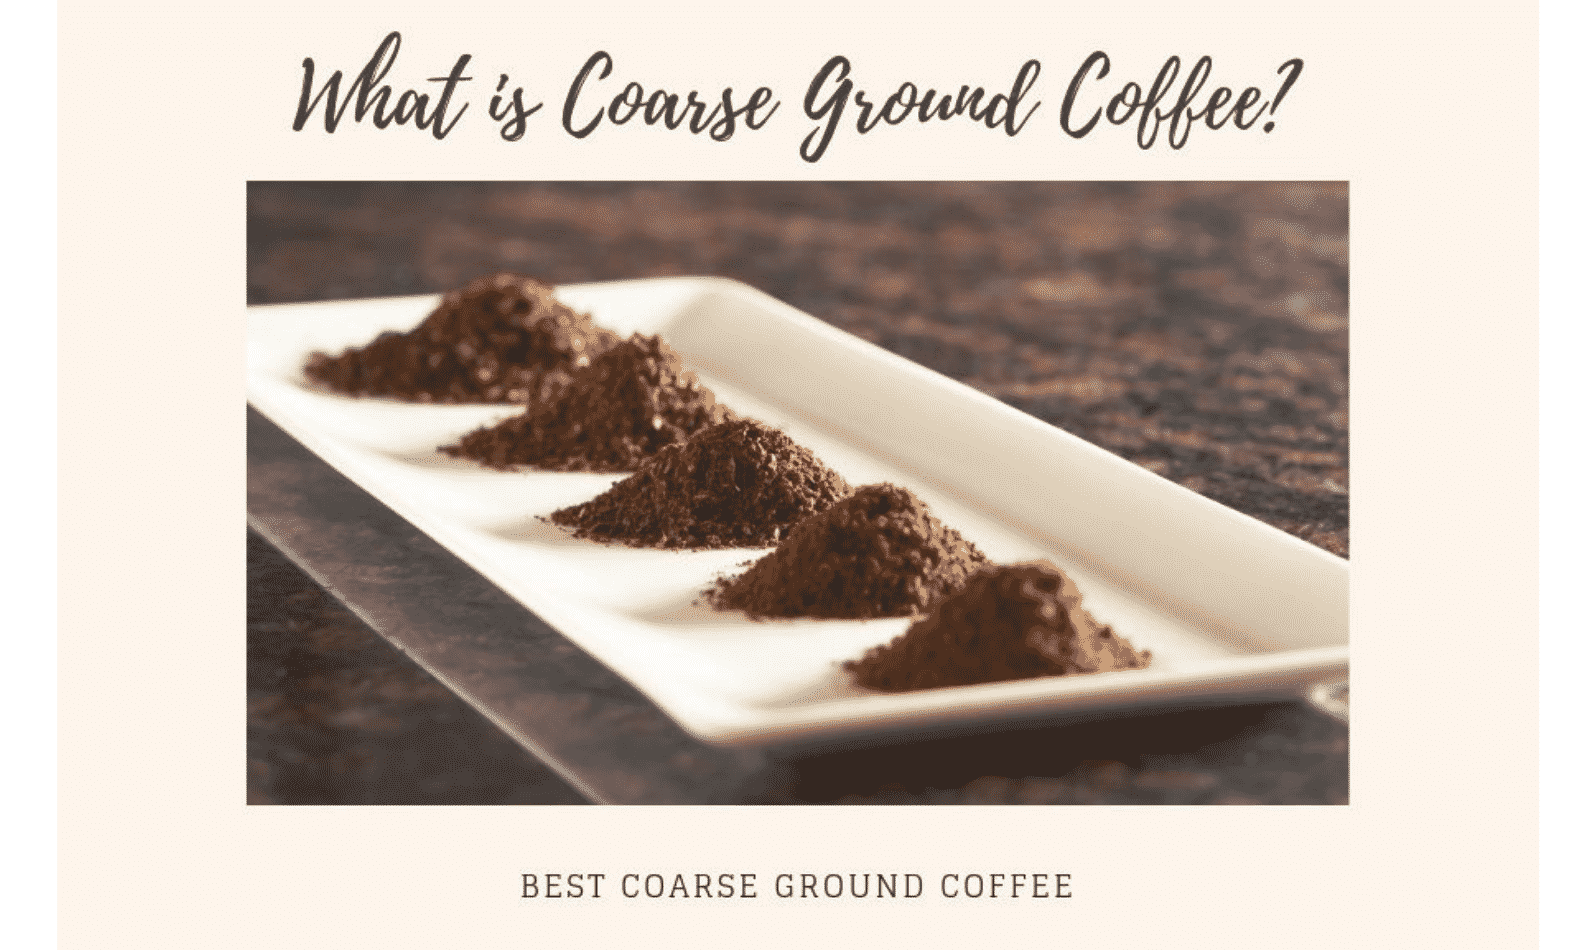 What is Coarse Ground Coffee